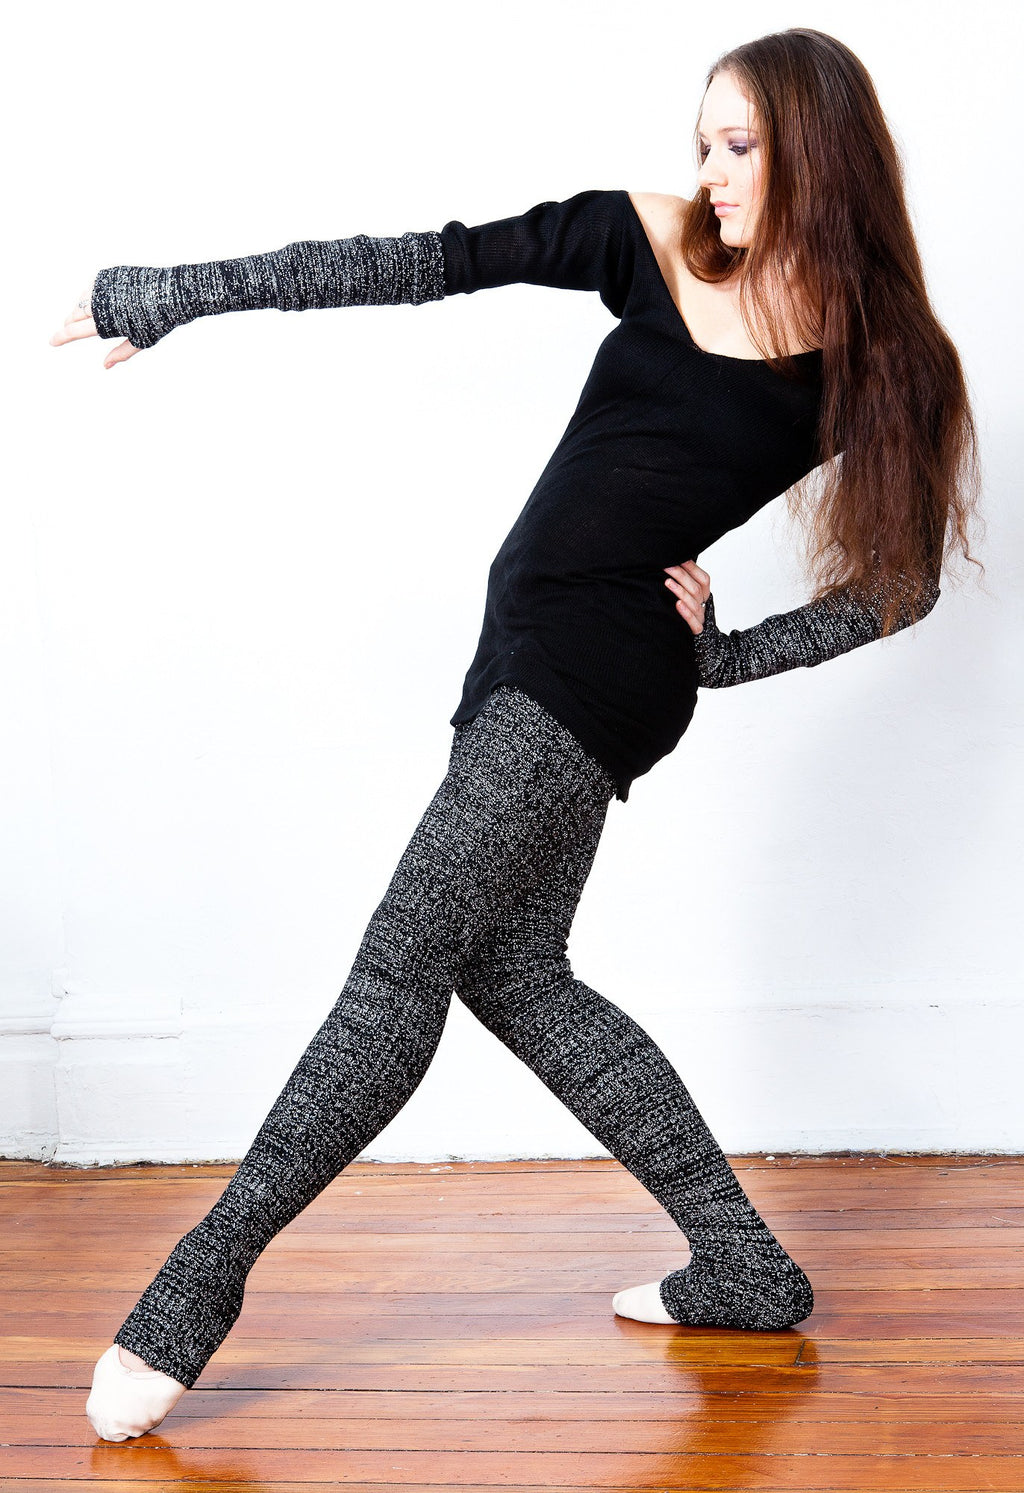 Leg & Arm Warmer KD dance New York Matching Set, Sexy, Warm & Unique Made In USA @KDdanceNewYork #MadeInUSA - 3